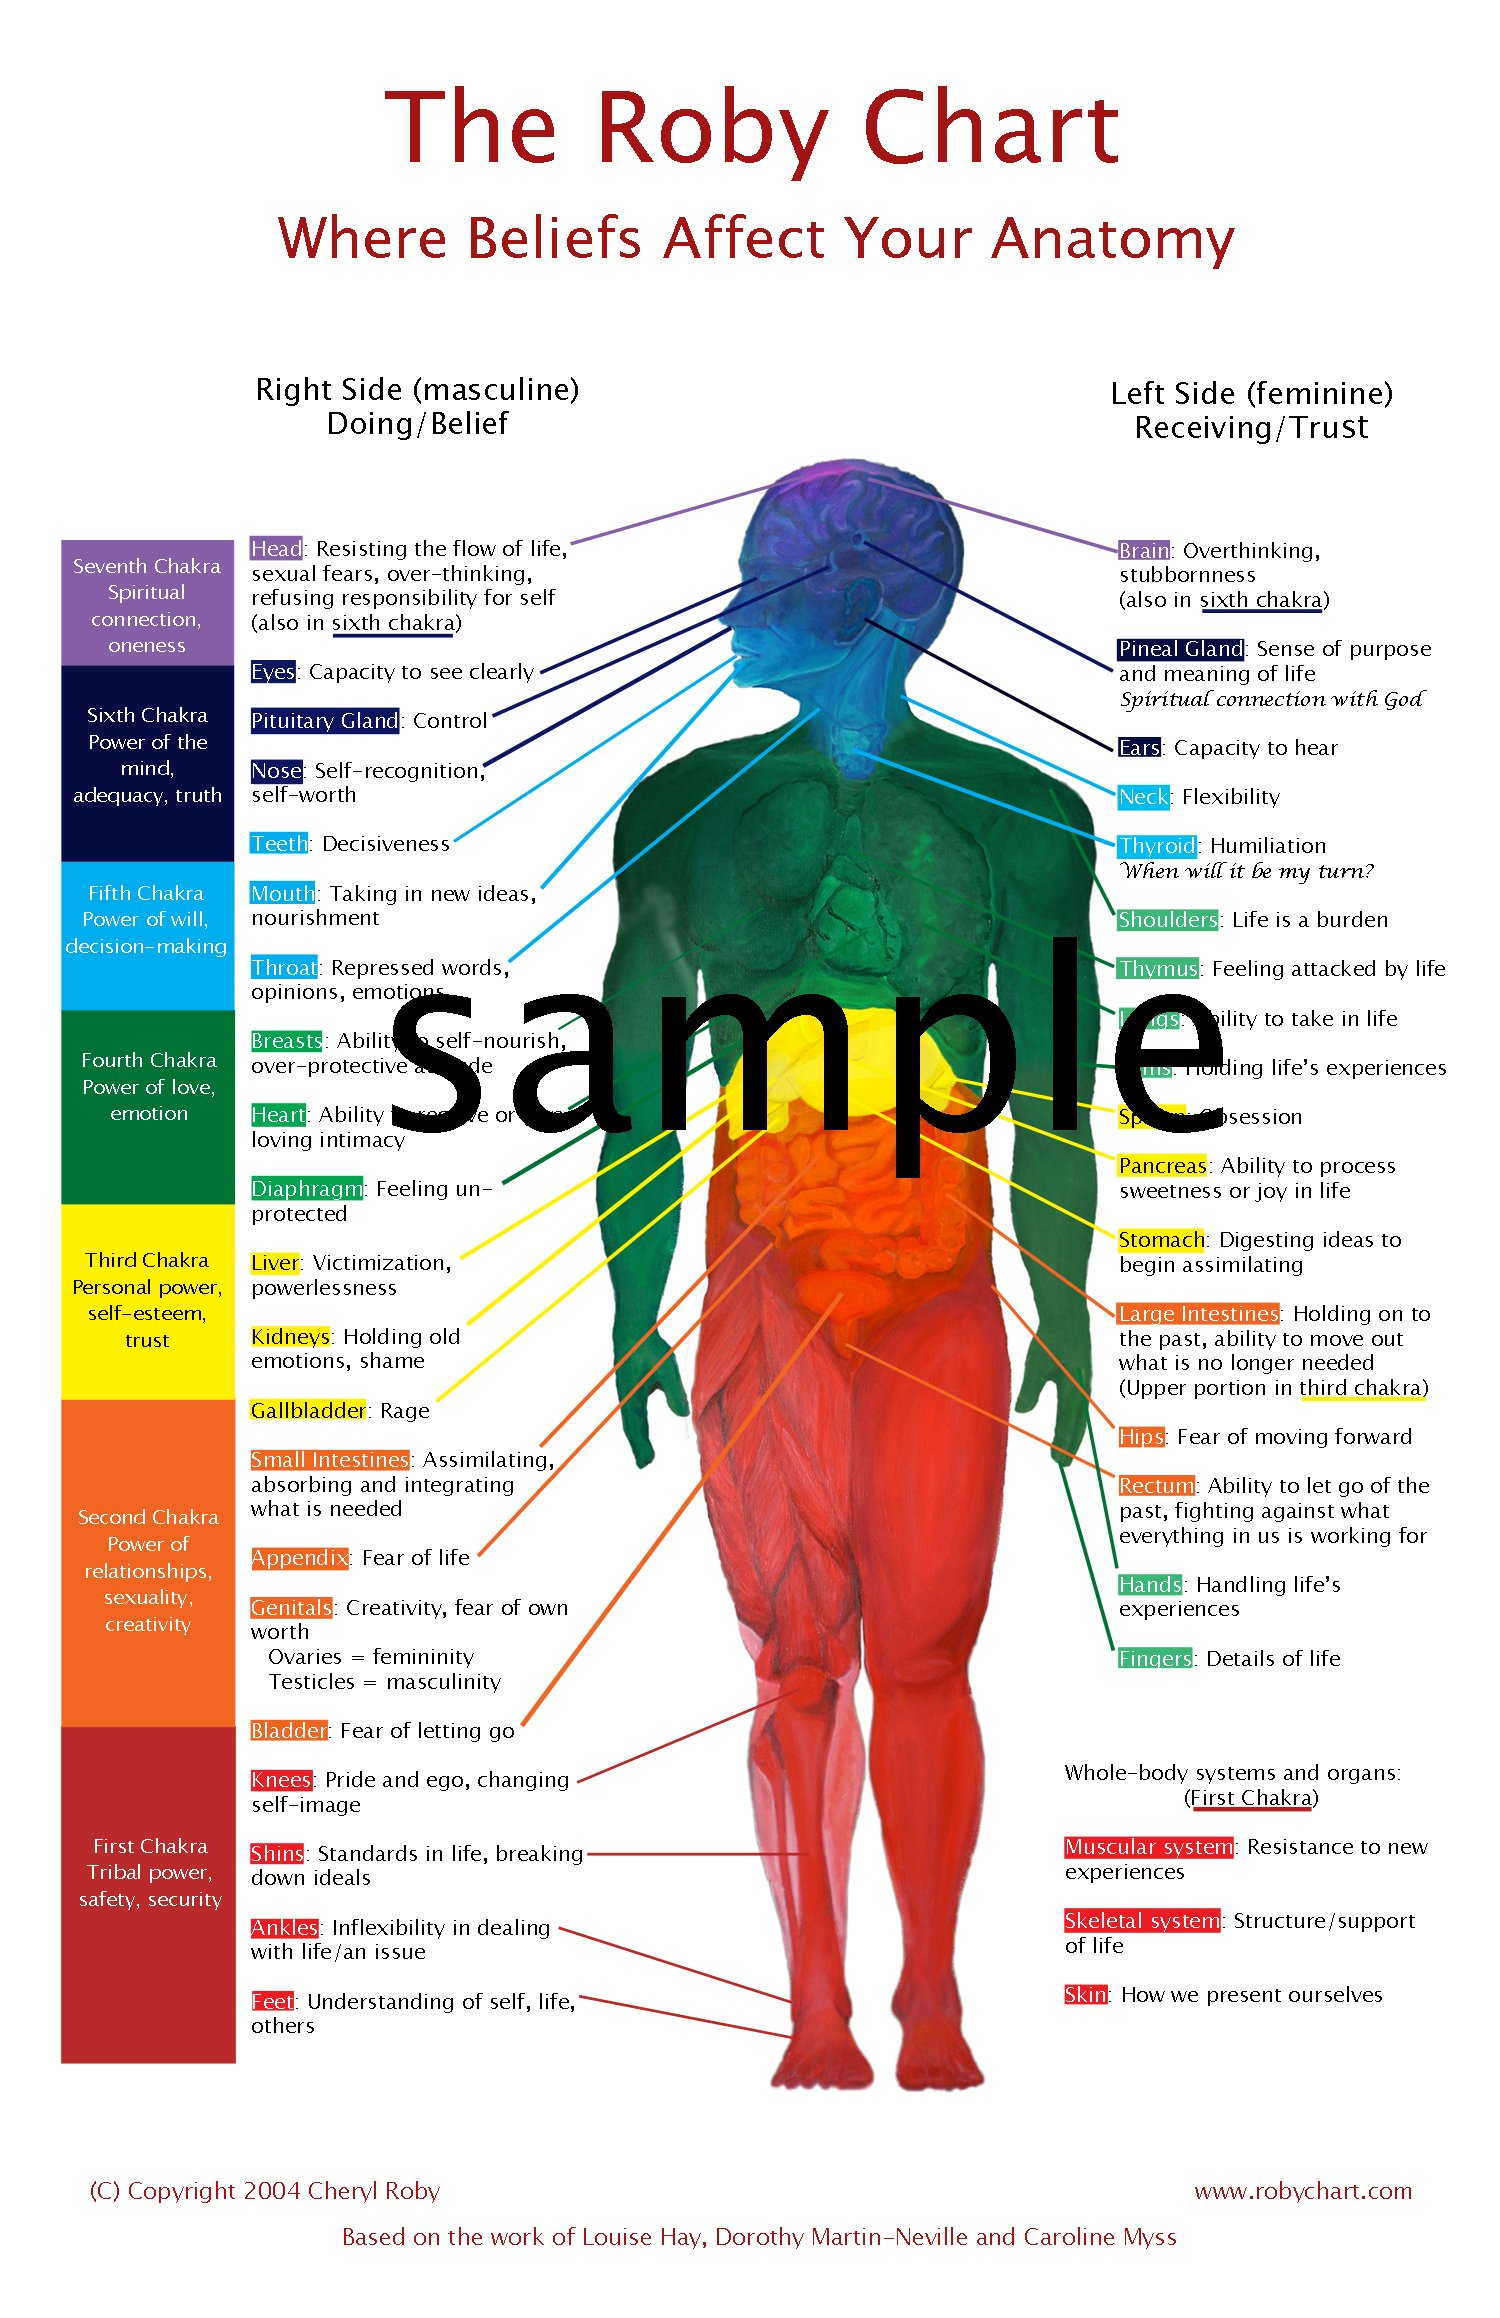 Amazon.com: The Roby Chart: Where Beliefs Affect Your Anatomy (White ...